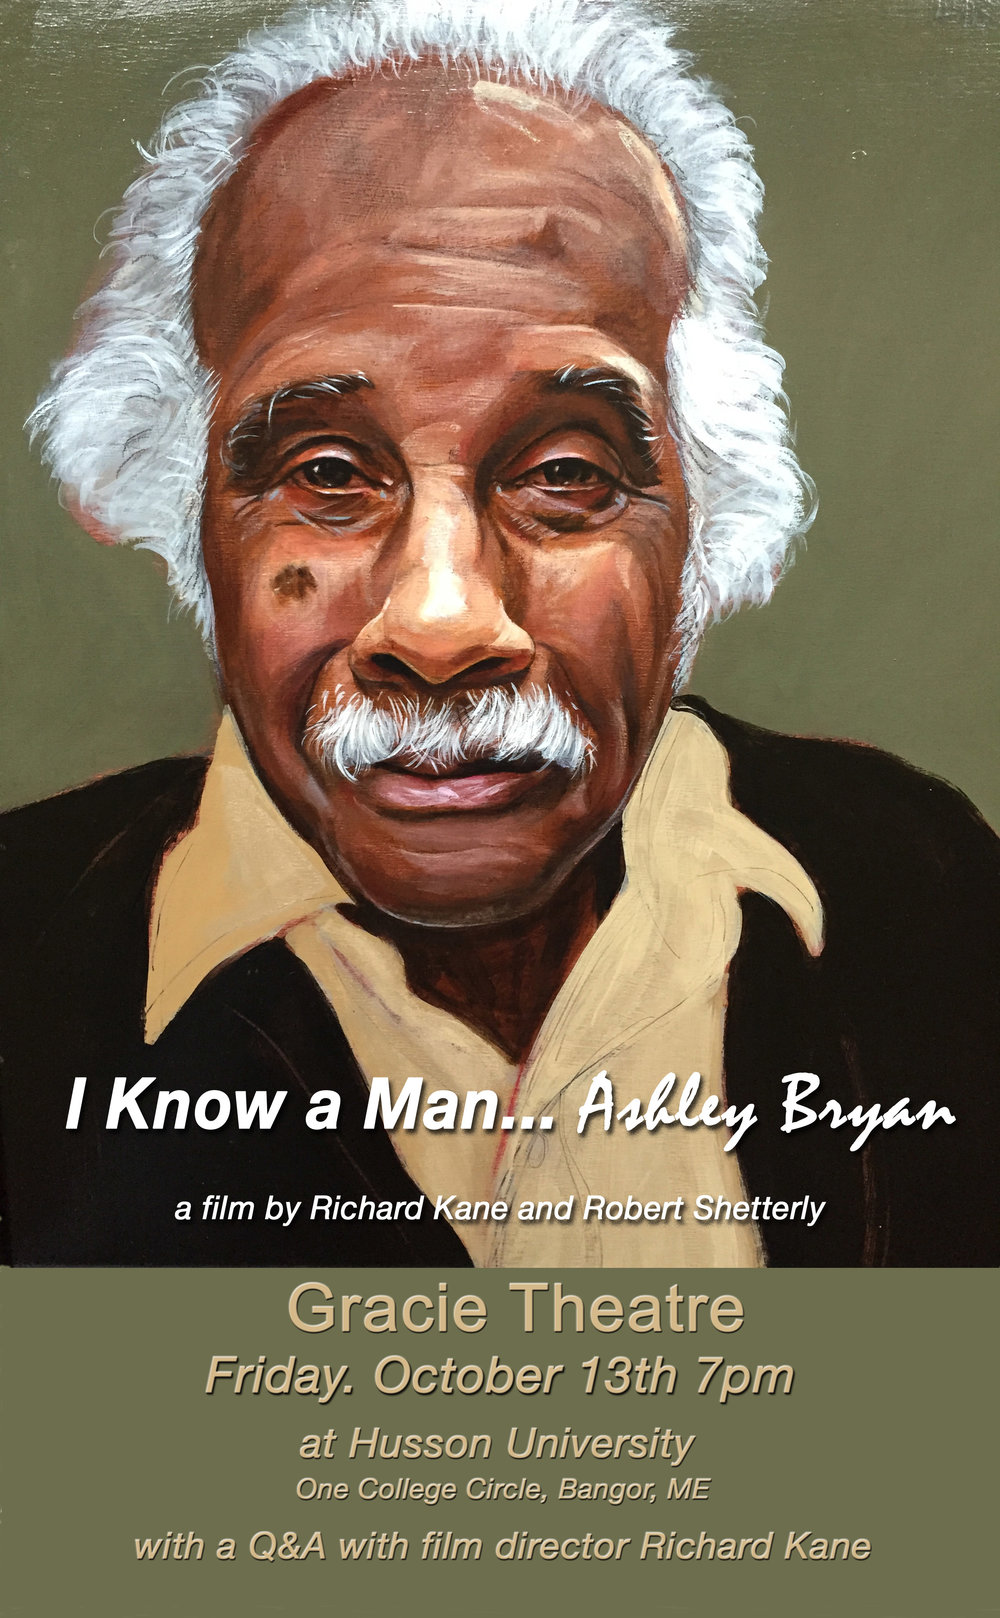 Free Screening of I Know a Man ... Ashley Bryan co-sponsored by Husson University, UMVA Maine masters, and weru Community Radio